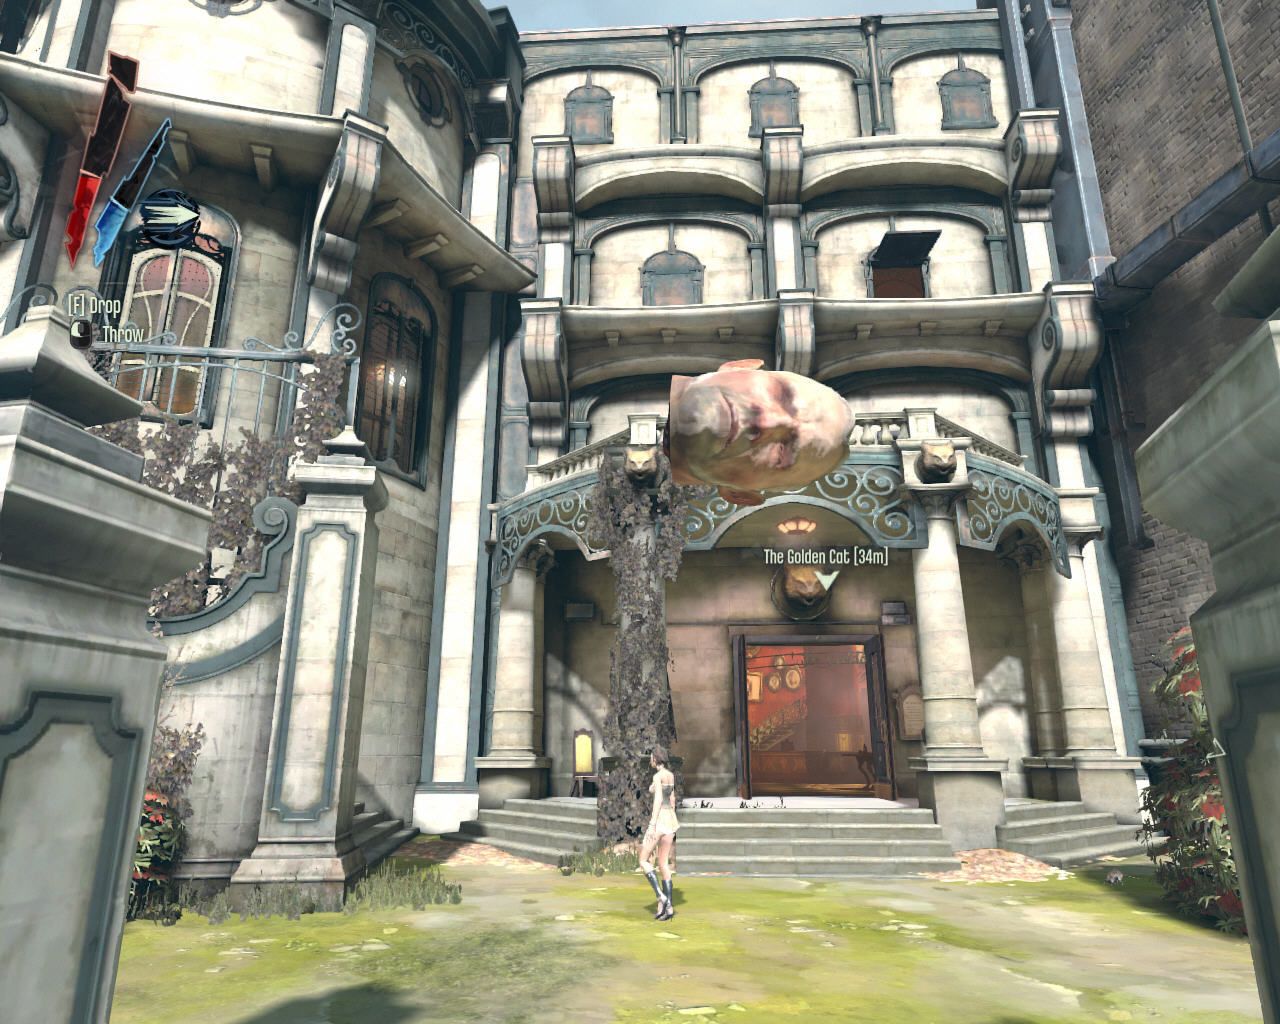 Dishonored Windows Corvo just cut off an officer's head and is proudly carrying it to this gorgeous whorehouse. Maybe he wants to impress that lady of questionable conduct walking in front